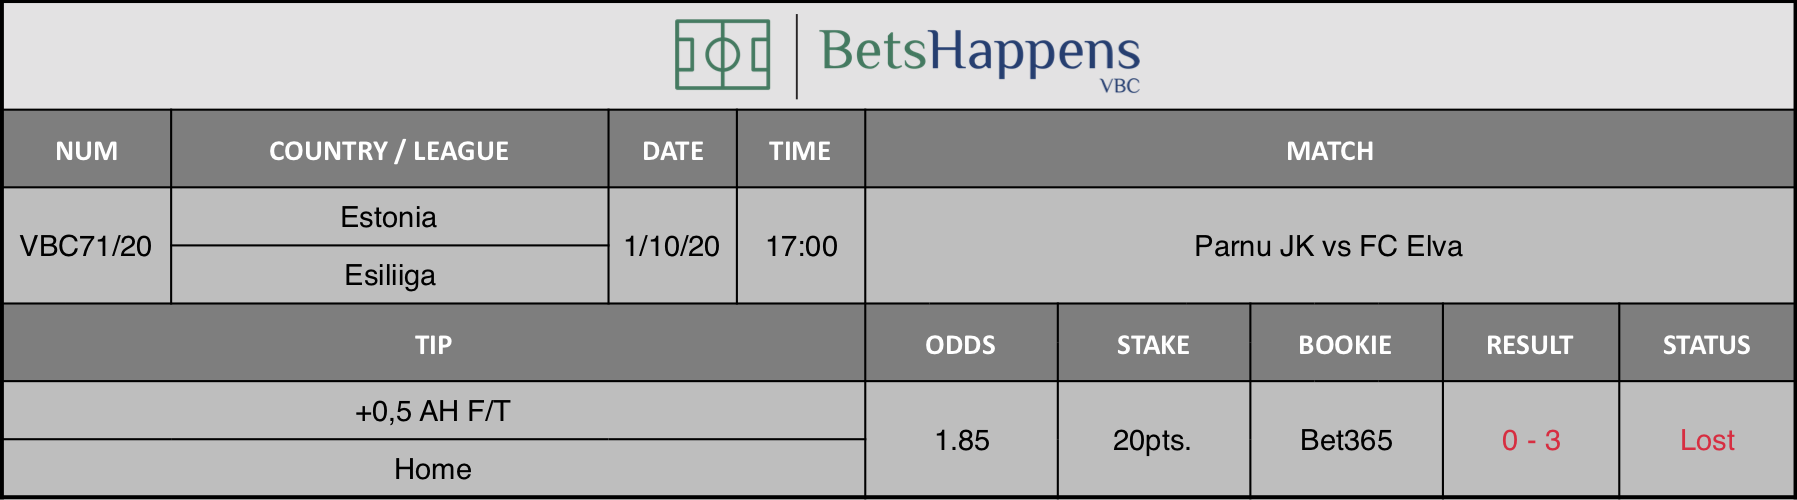 Results of our advice for the Parnu JK vs FC Elva match where +0.5 AH F / T Home is recommended.